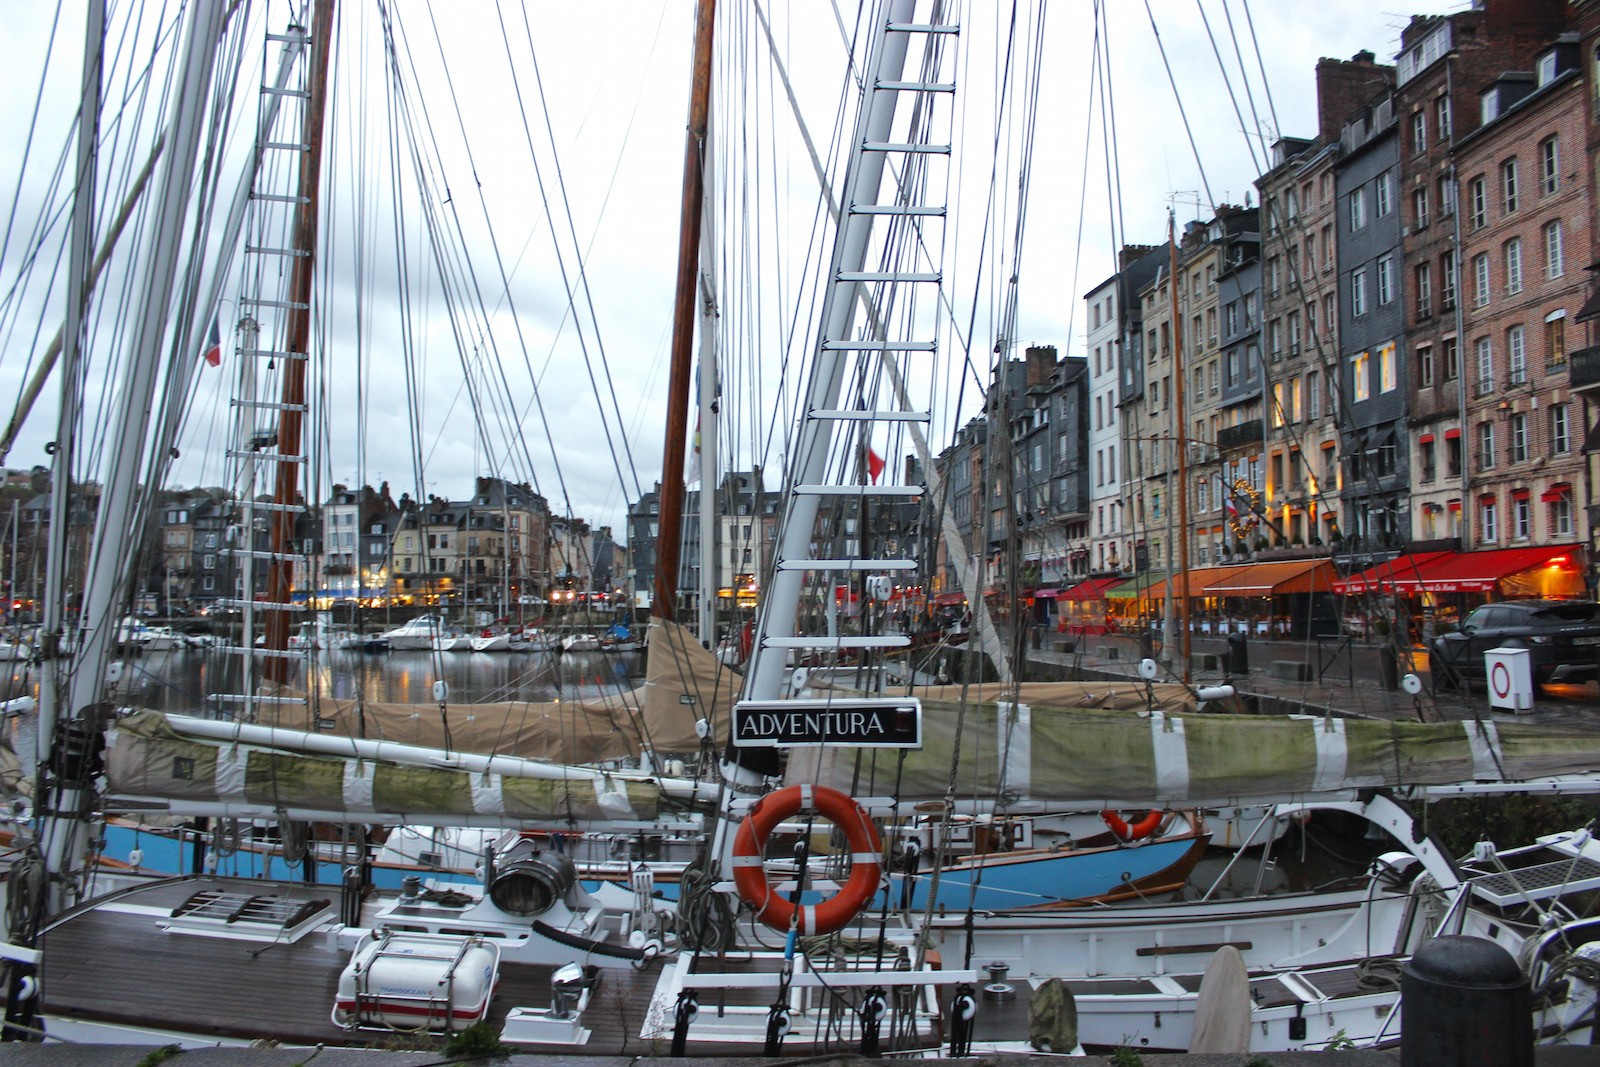 Honfleur, a quaint town in the Normand region of France, is the perfect weekend retreat from Paris.